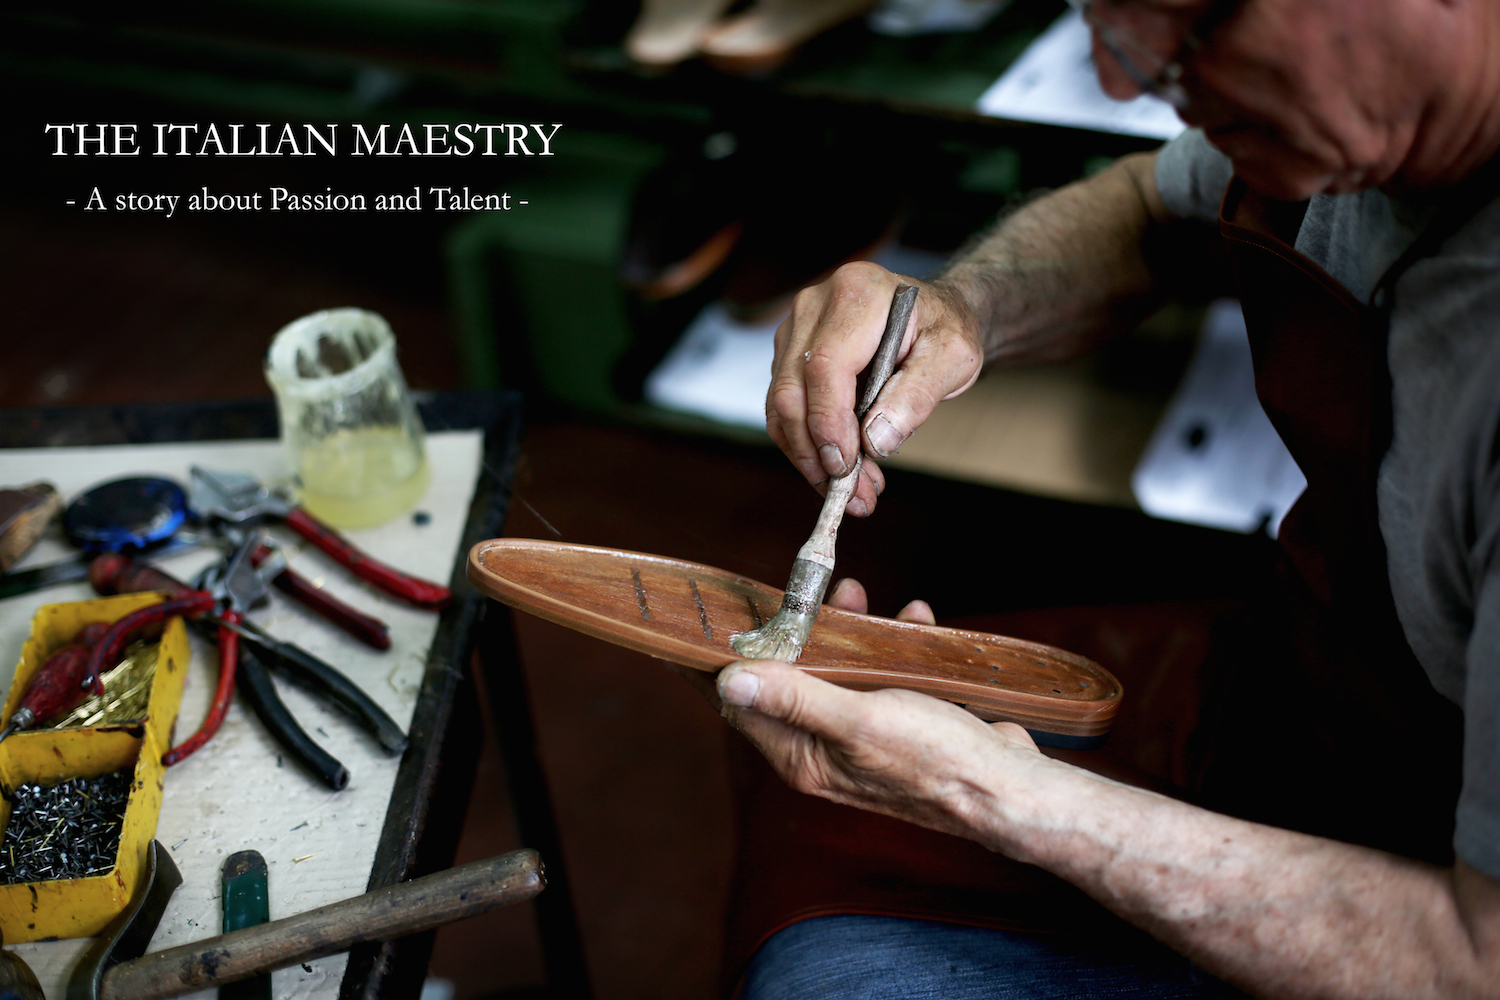 The Most Exquisite Italian Craftsmanship - Italian Shoes craftsmanship Craftsmanship: The Most Exquisite Italian Arts and Crafts The Most Exquisite Italian Craftsmanship Italian Shoes